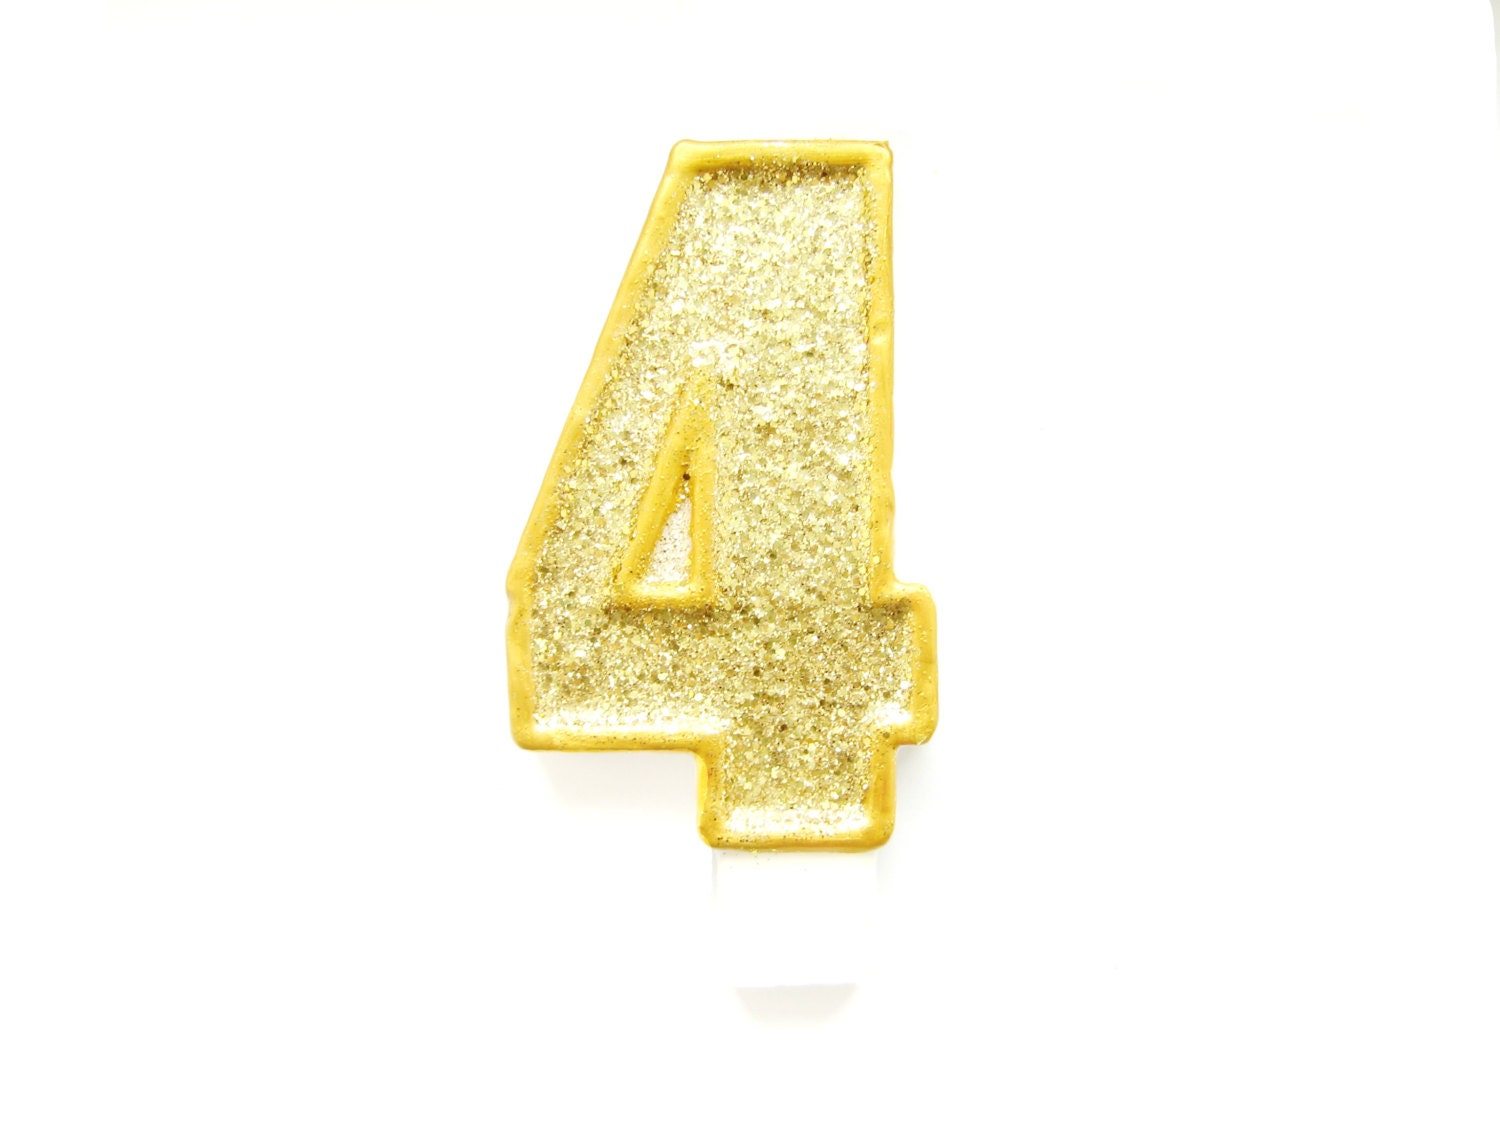 Giant Gold Glitter Number 4 Birthday Candle